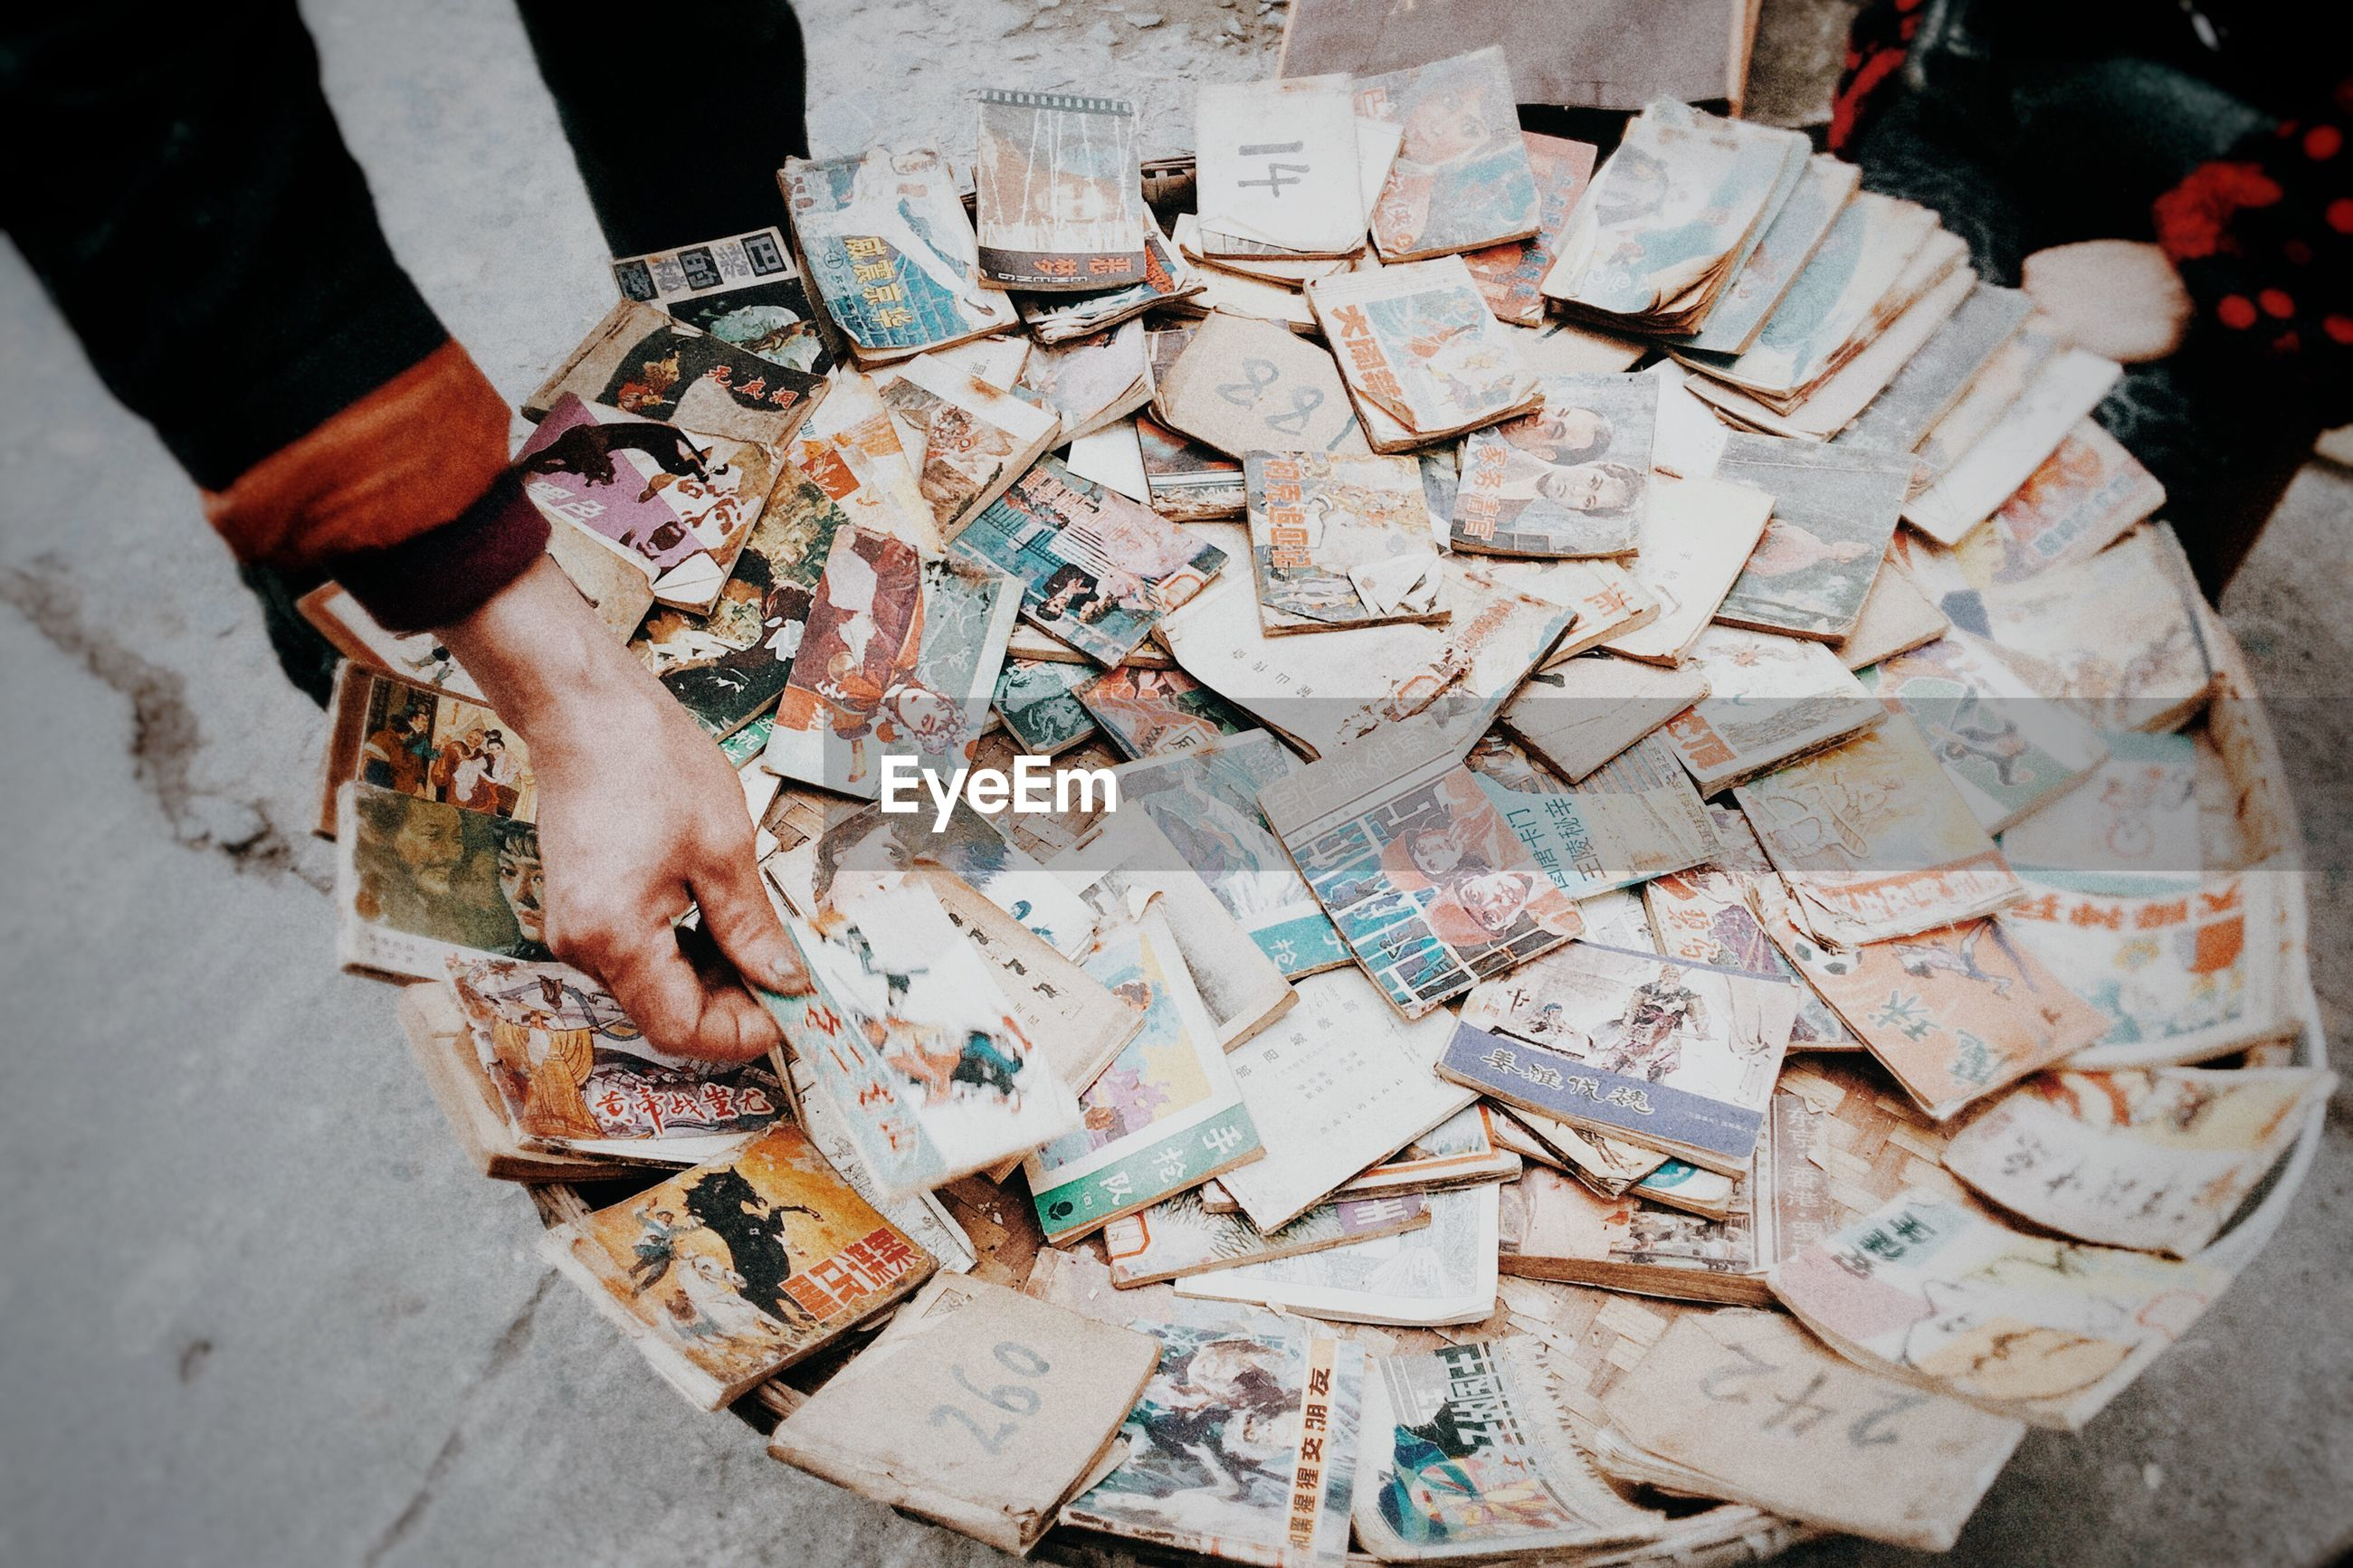 real people, high angle view, paper, lifestyles, religion, text, human body part, men, one person, human hand, paper currency, indoors, day, people